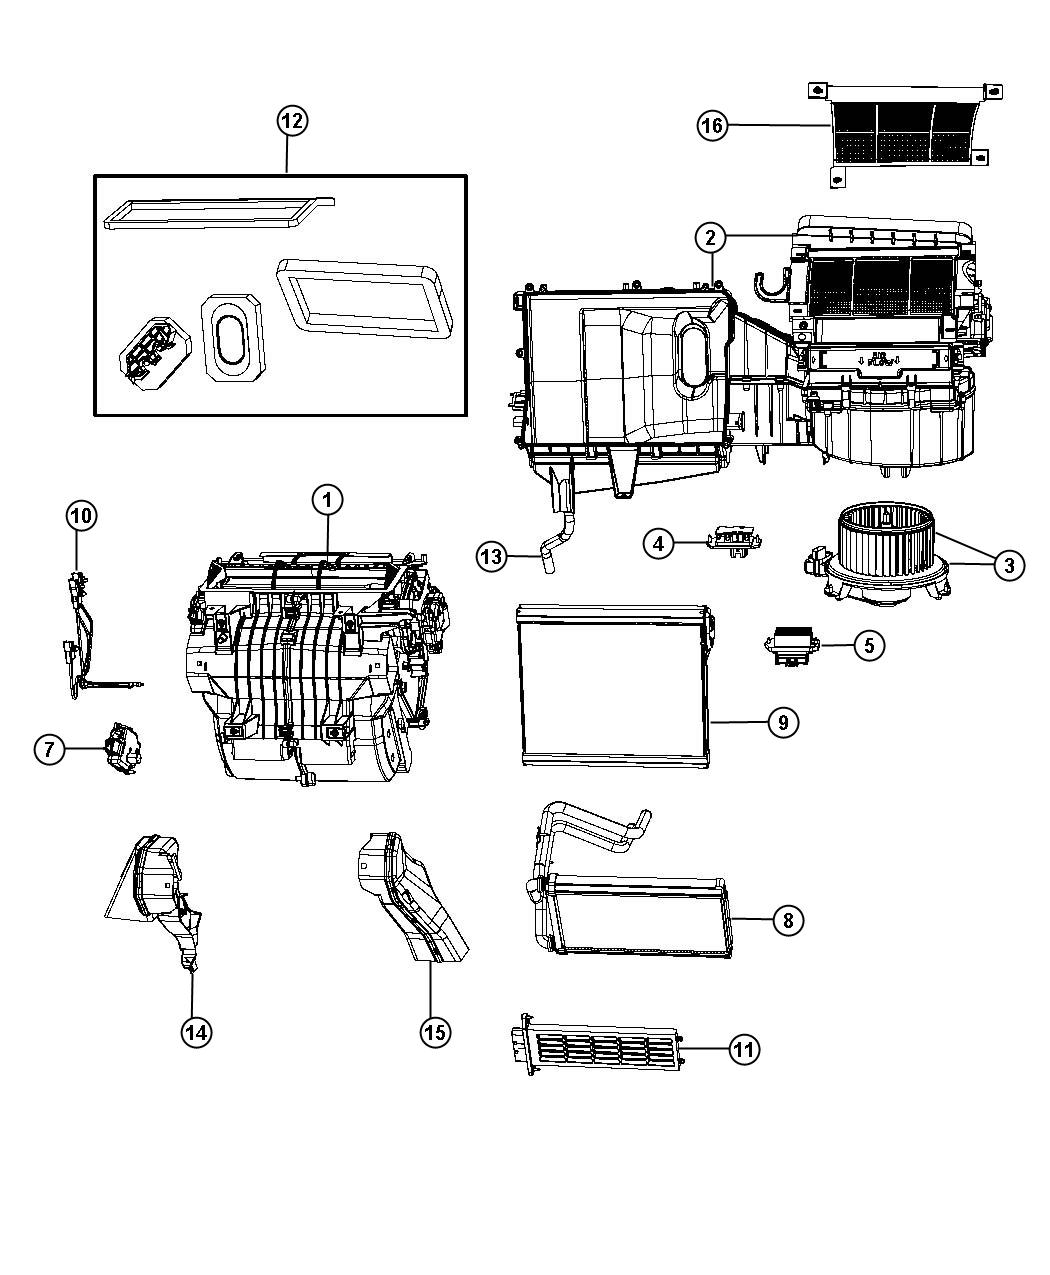 Service Manual Dodge Avenger Heater Motor Replace